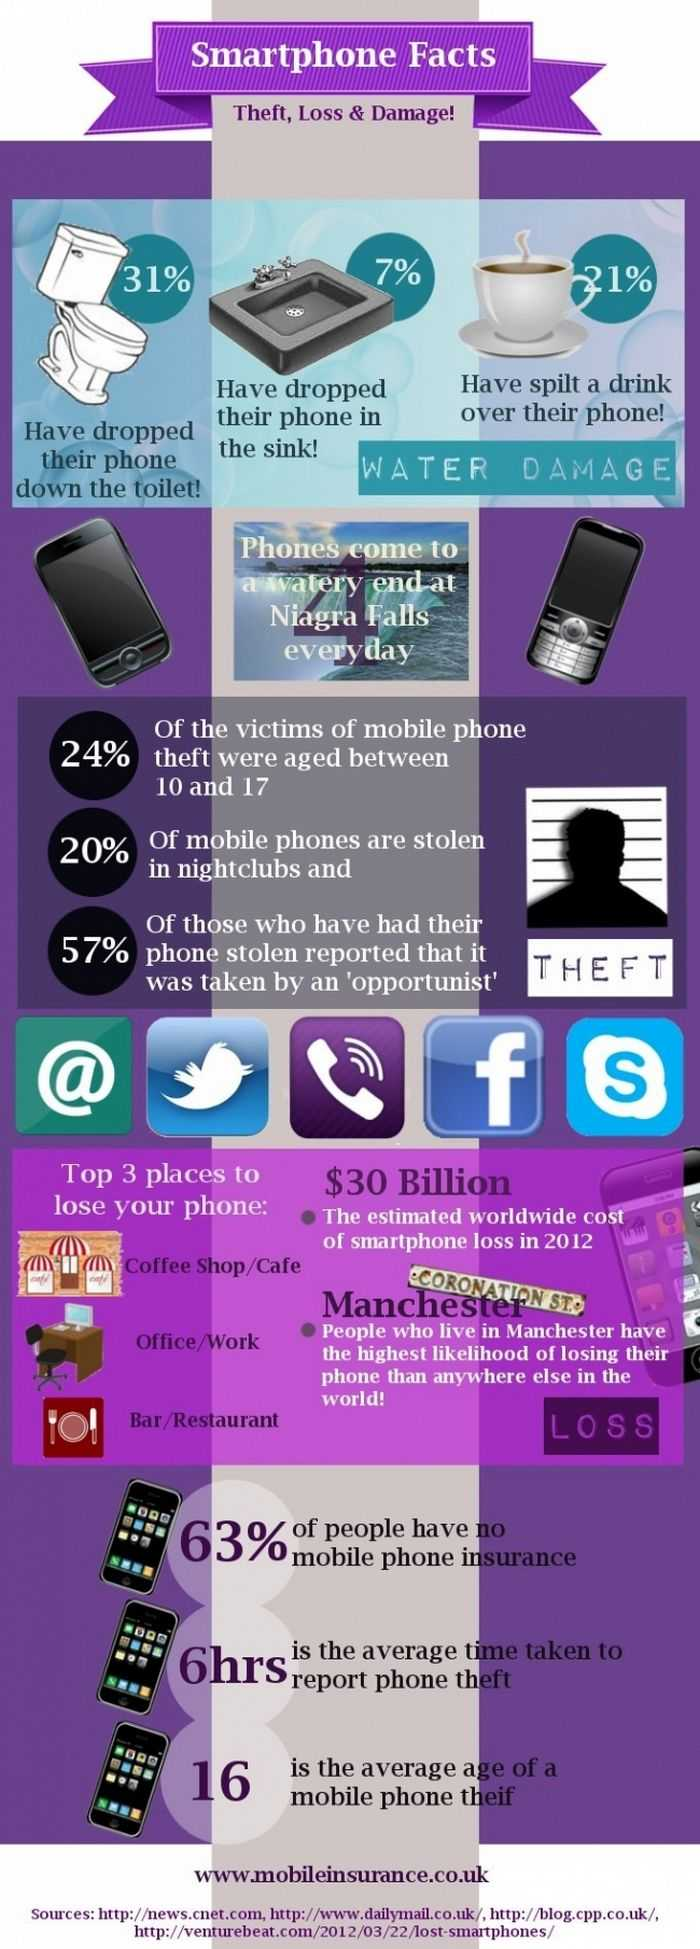 Lost, Stolen Or Damaged Smartphones: The Facts!